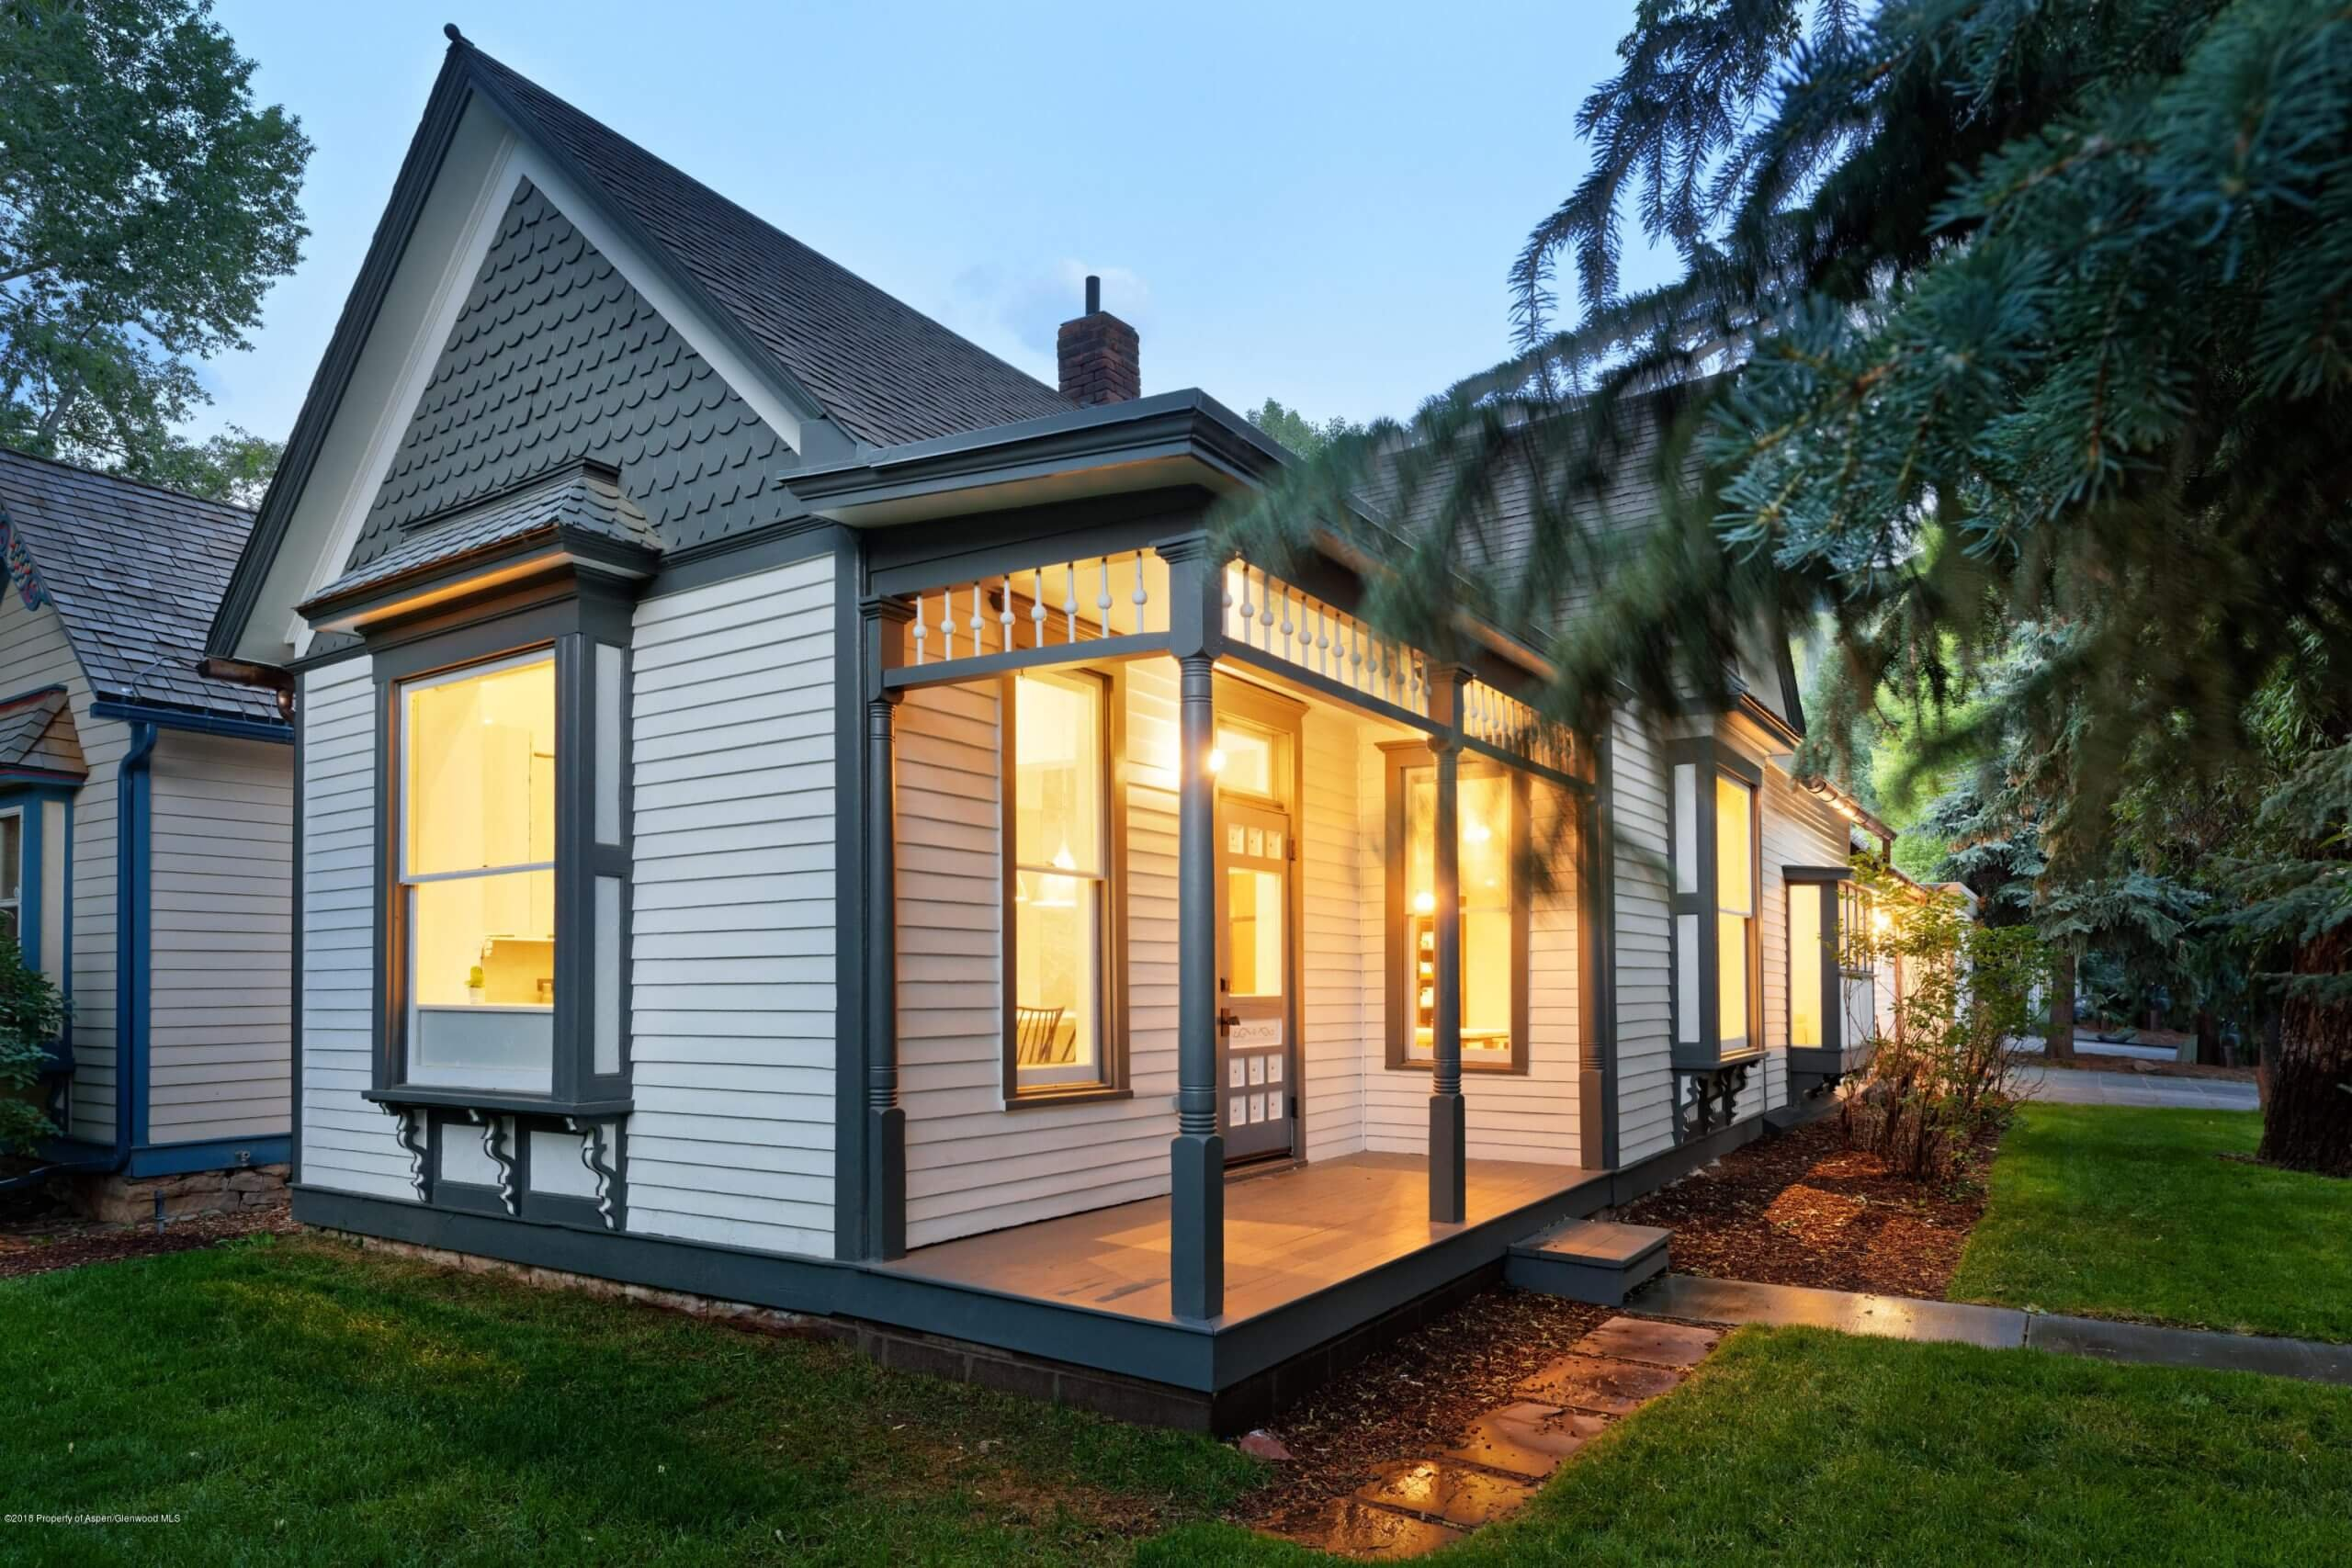 Historic West End Aspen – Small 3-Bdrm Home at 131 W Bleeker St Closes at $5.85M/$2,688 SF Furn Image